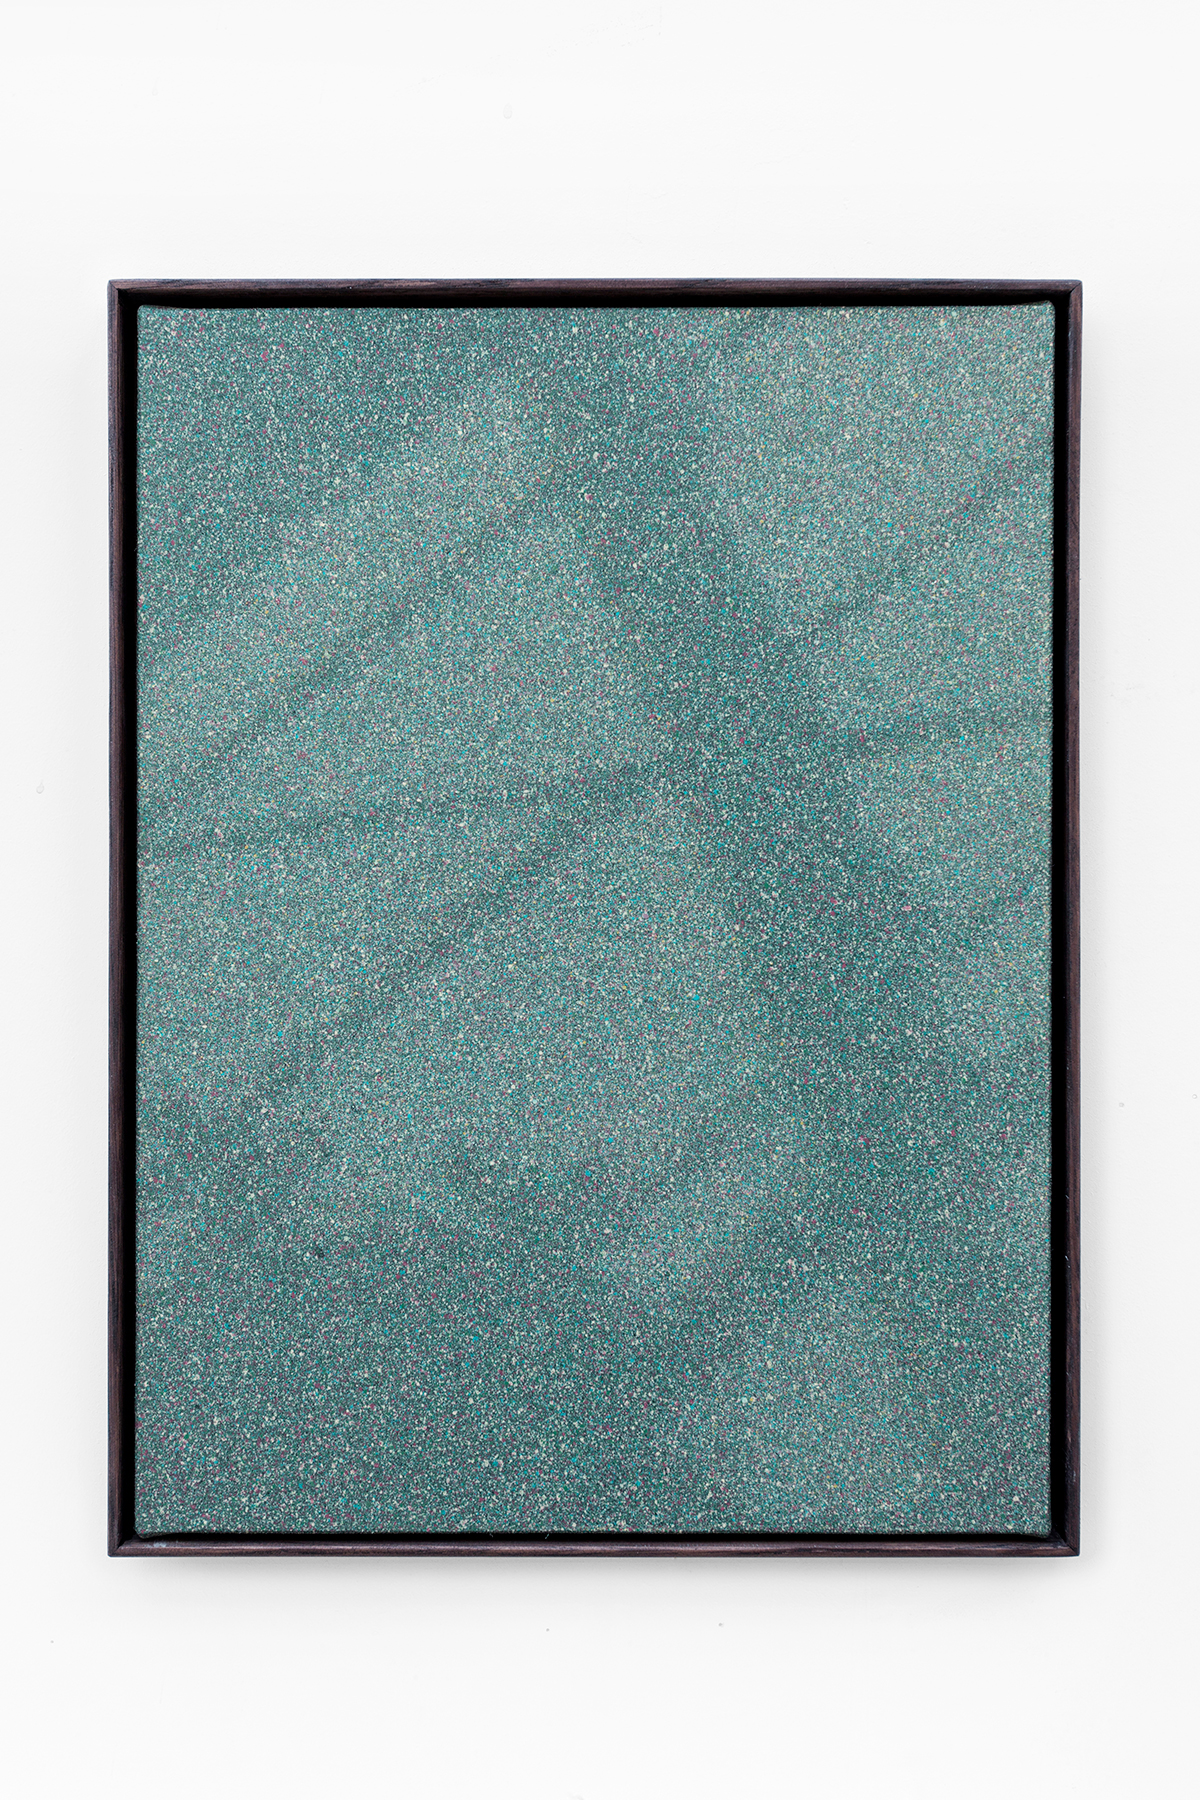 «Shadow Canvas # 40» 2017 Acrylic paint and gesso on canvas over wood panel. 42 x 32 cm with oak frame.